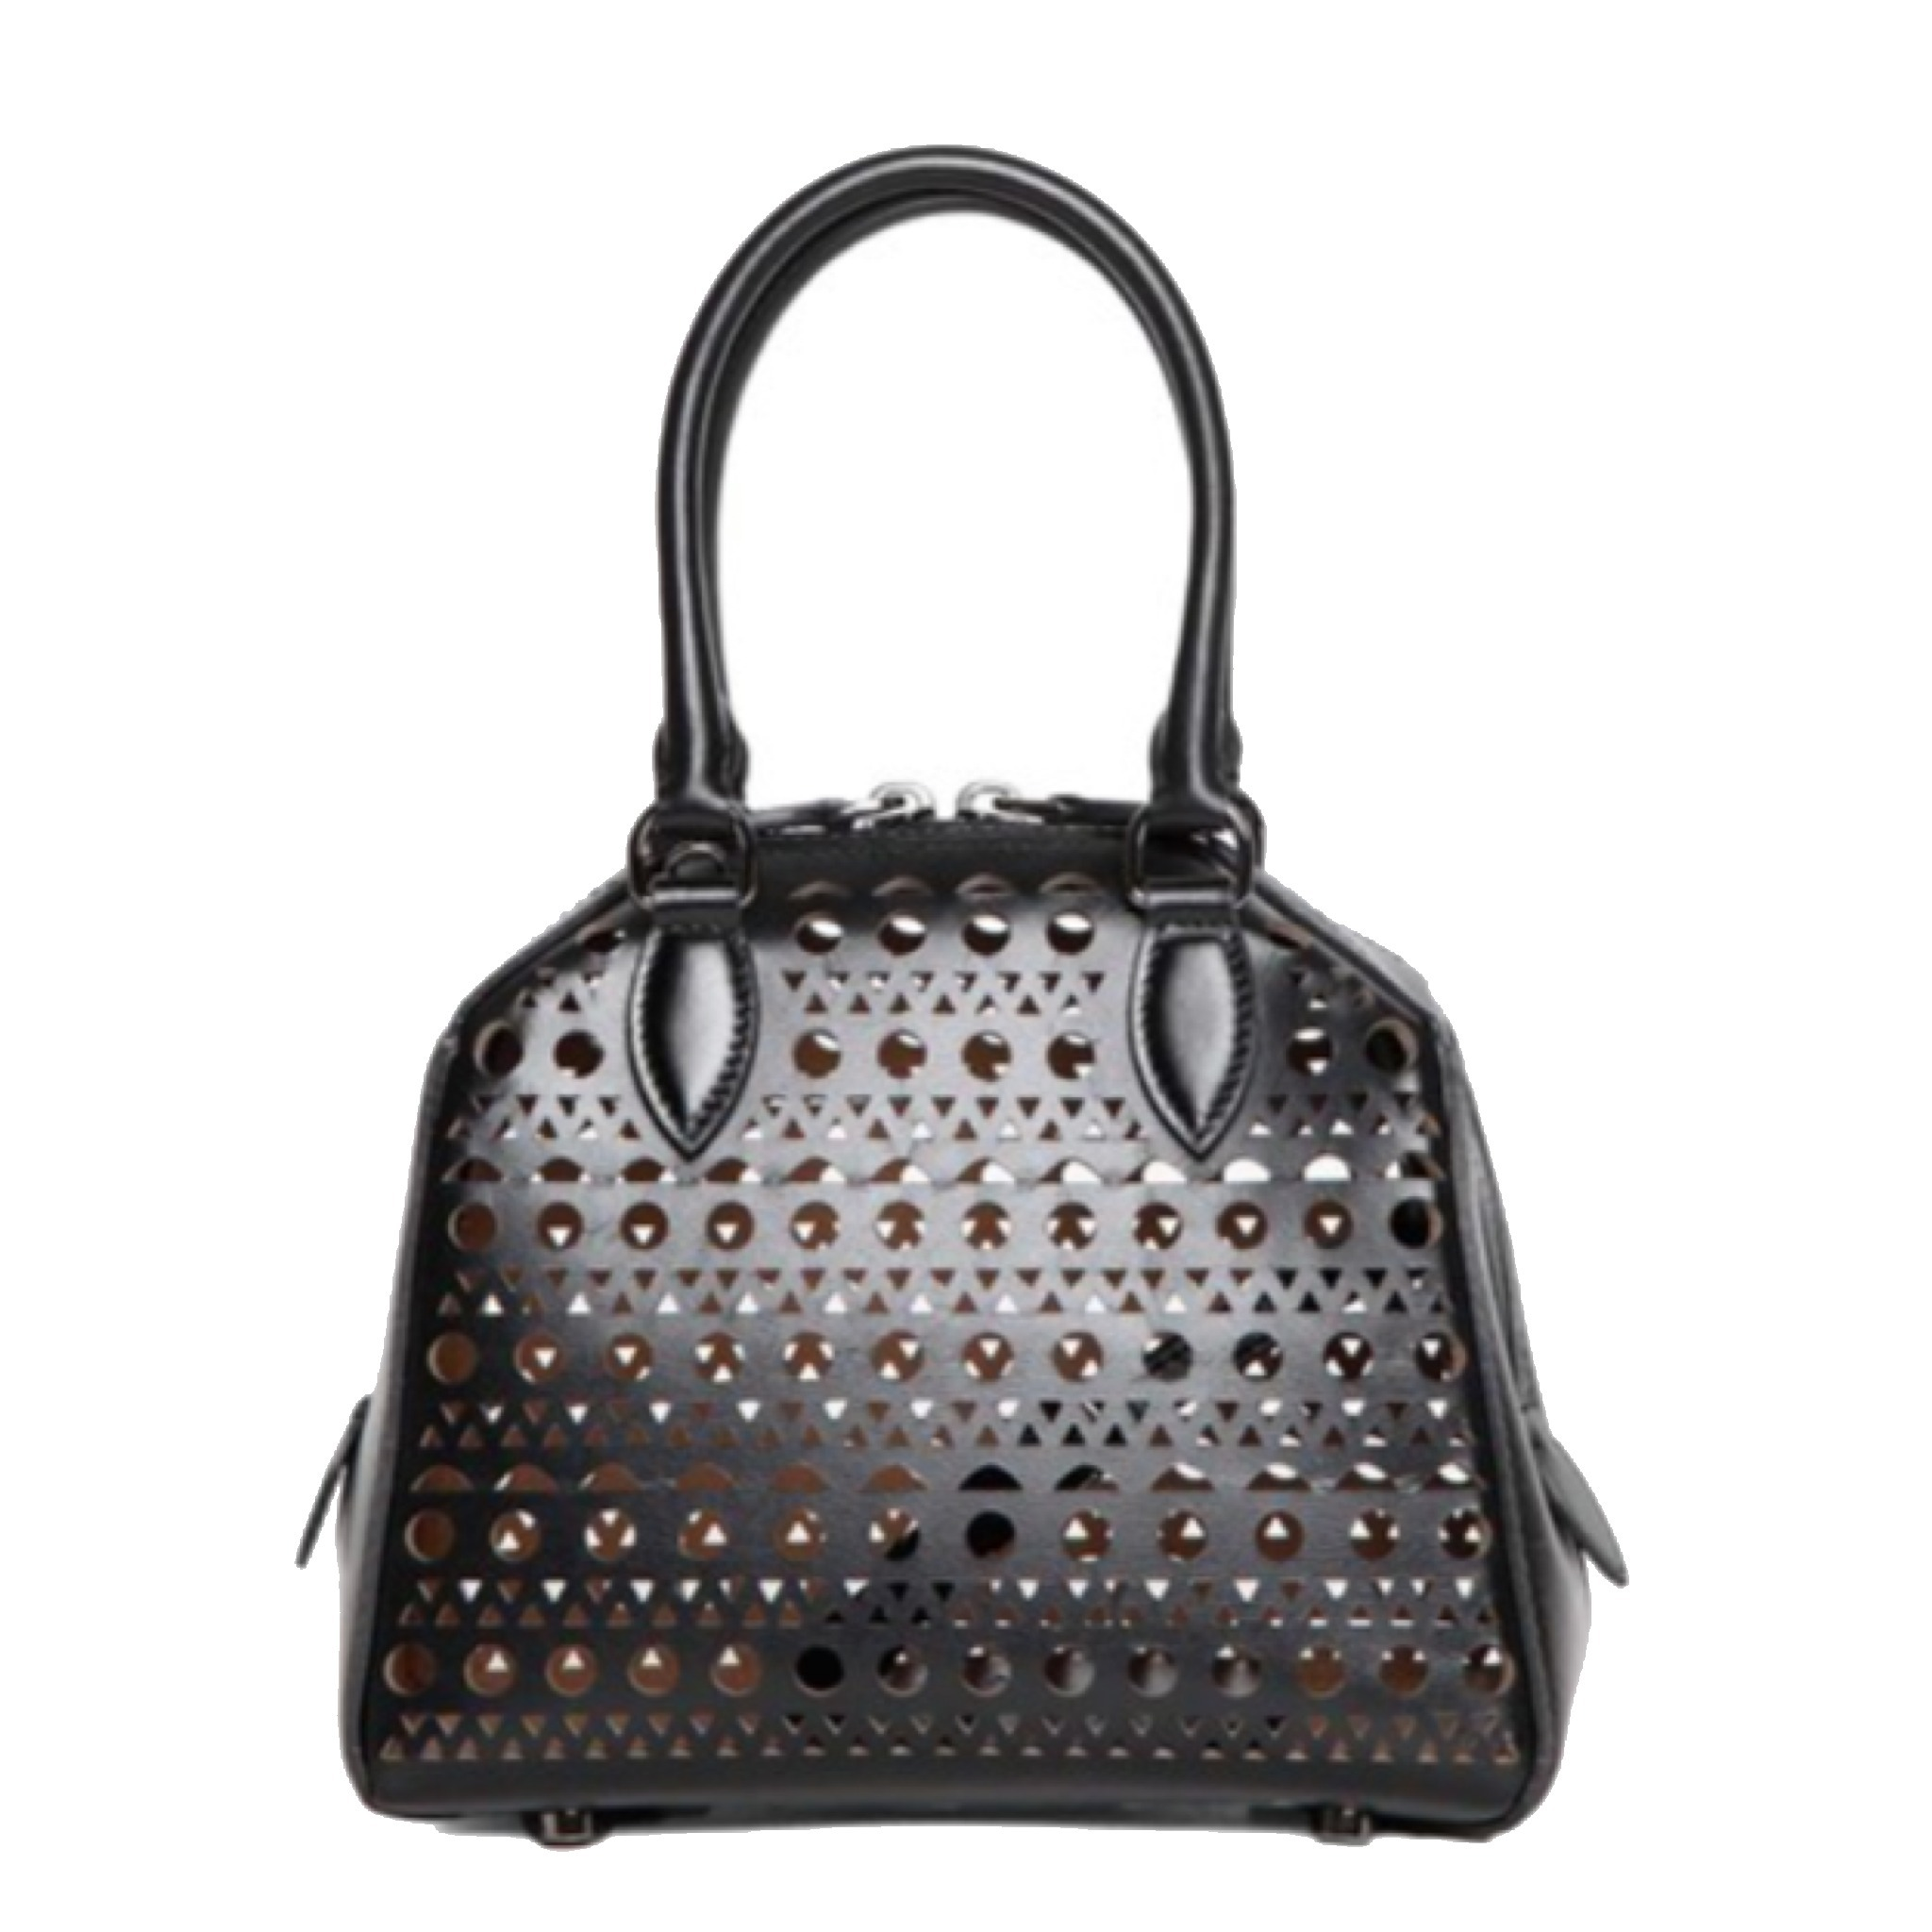 ★★ALAIA《アライア》PERFORATED LEATHER BAG★送料込み★★